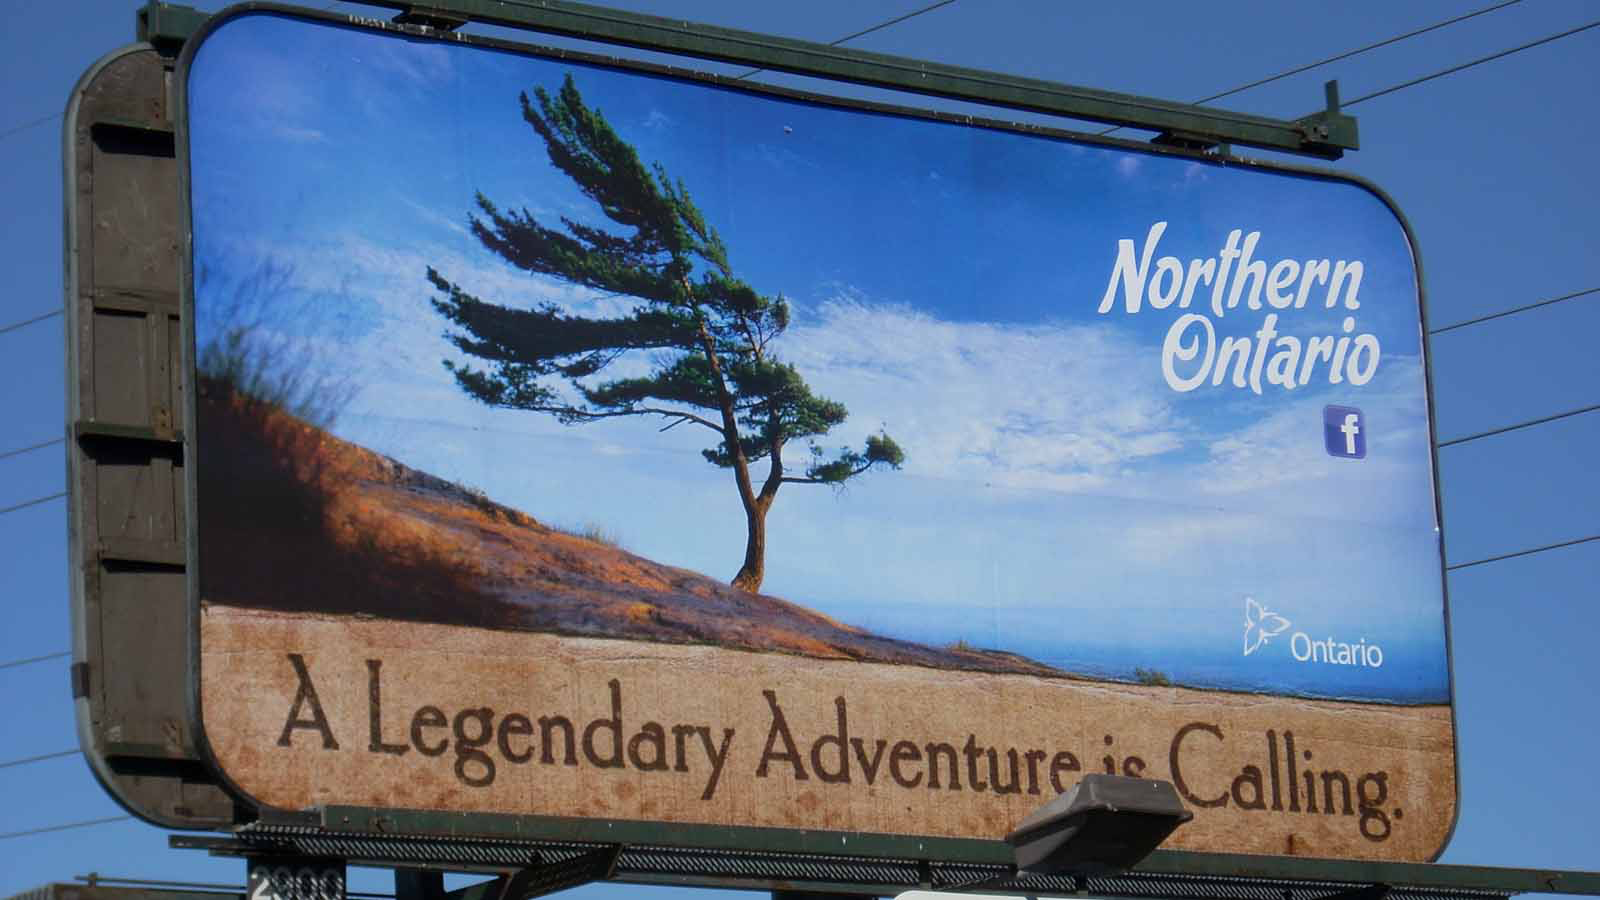 Northeastern Ontario Tourism | Escape From Daily Life | Place Branding, Social Media